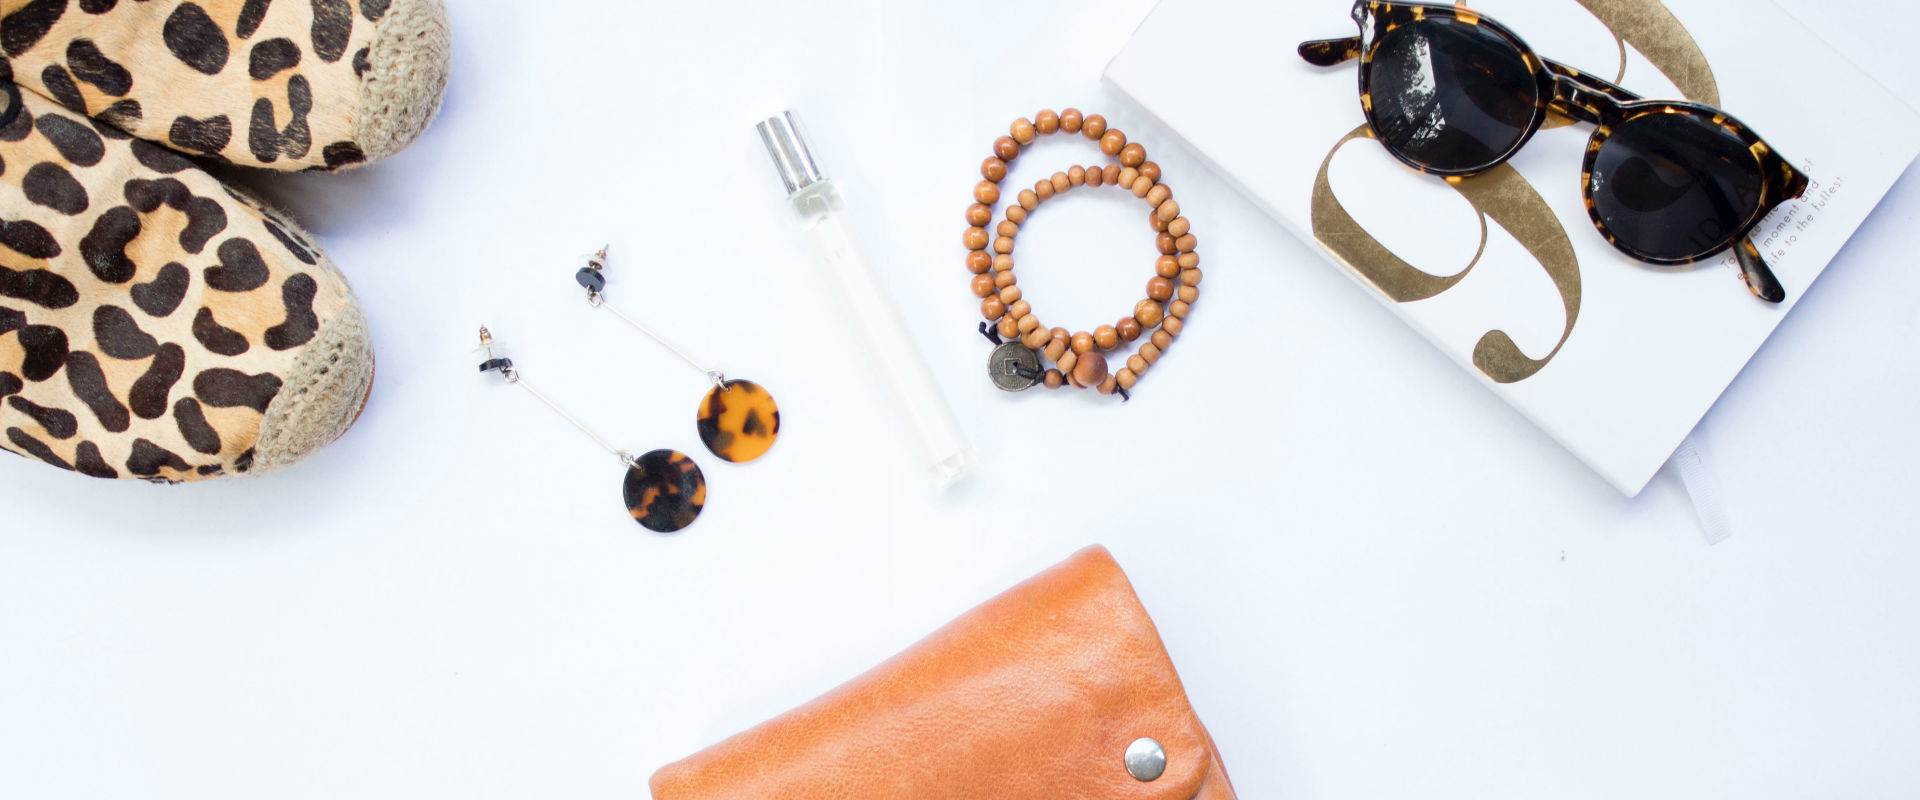 Accessories about